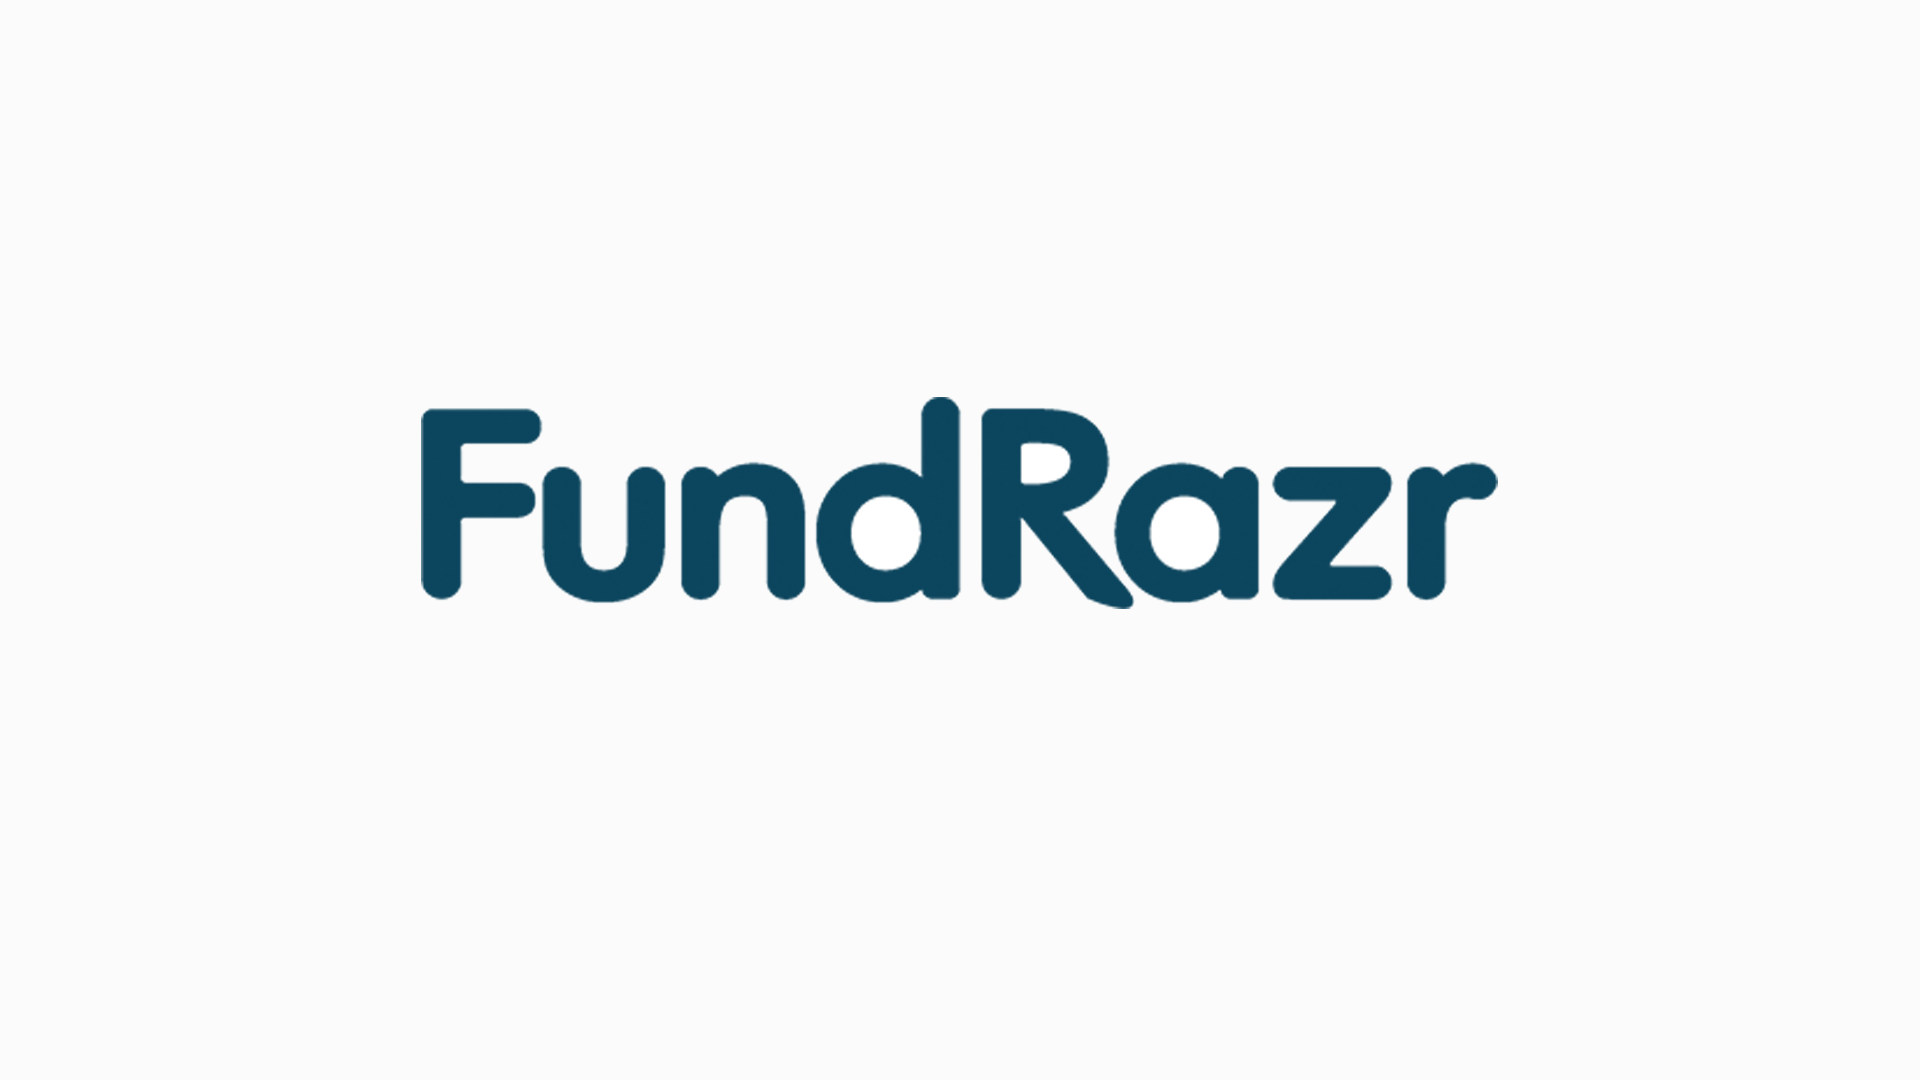 FundRazr website